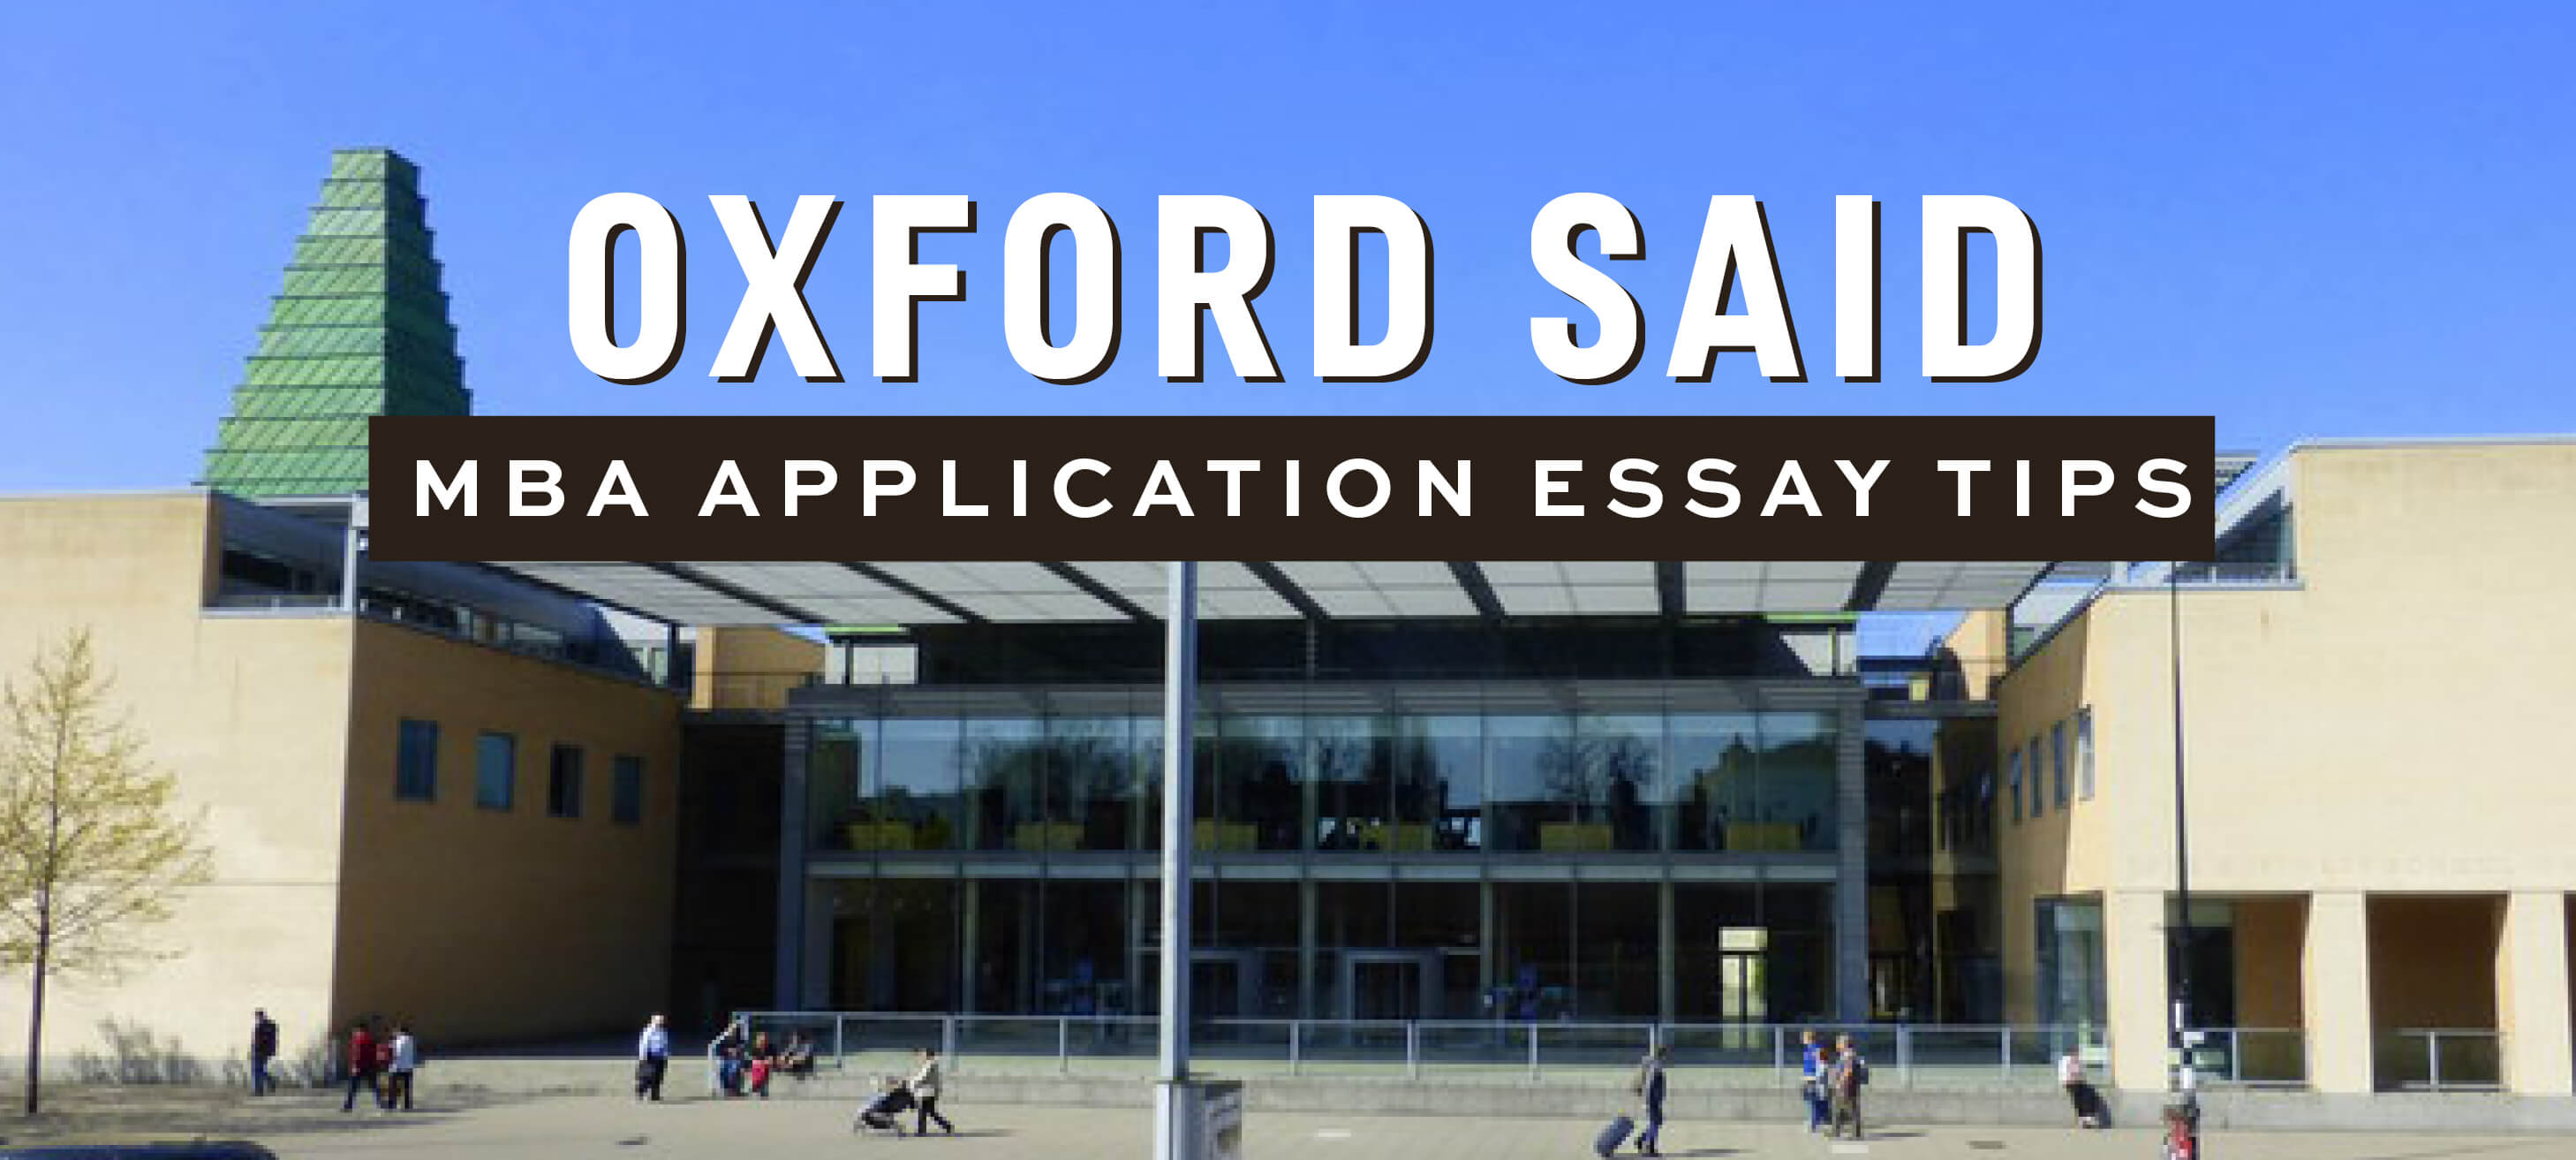 oxford application essay University of oxford application essays (college admissions essays) writing service, buy essays, term papers, research papers buy online, college application essay.